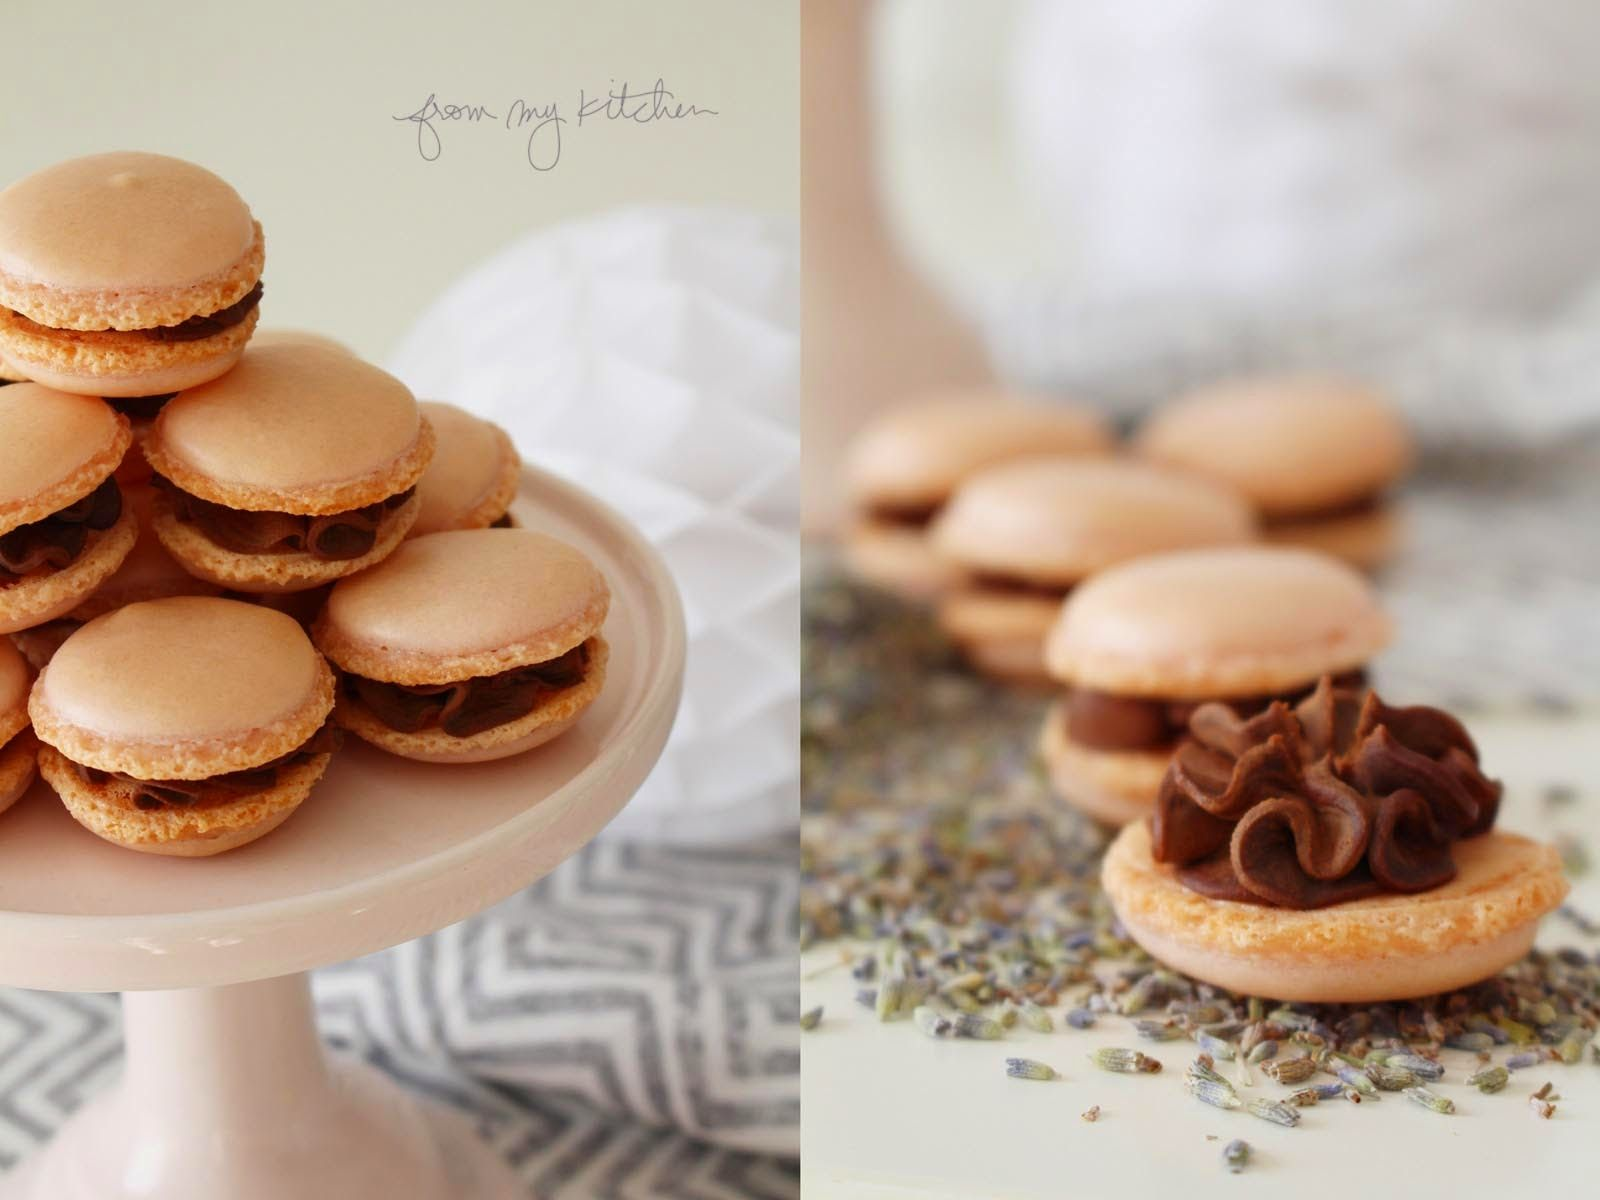 Leaves and Butterflies: Hauchzarte Macarons